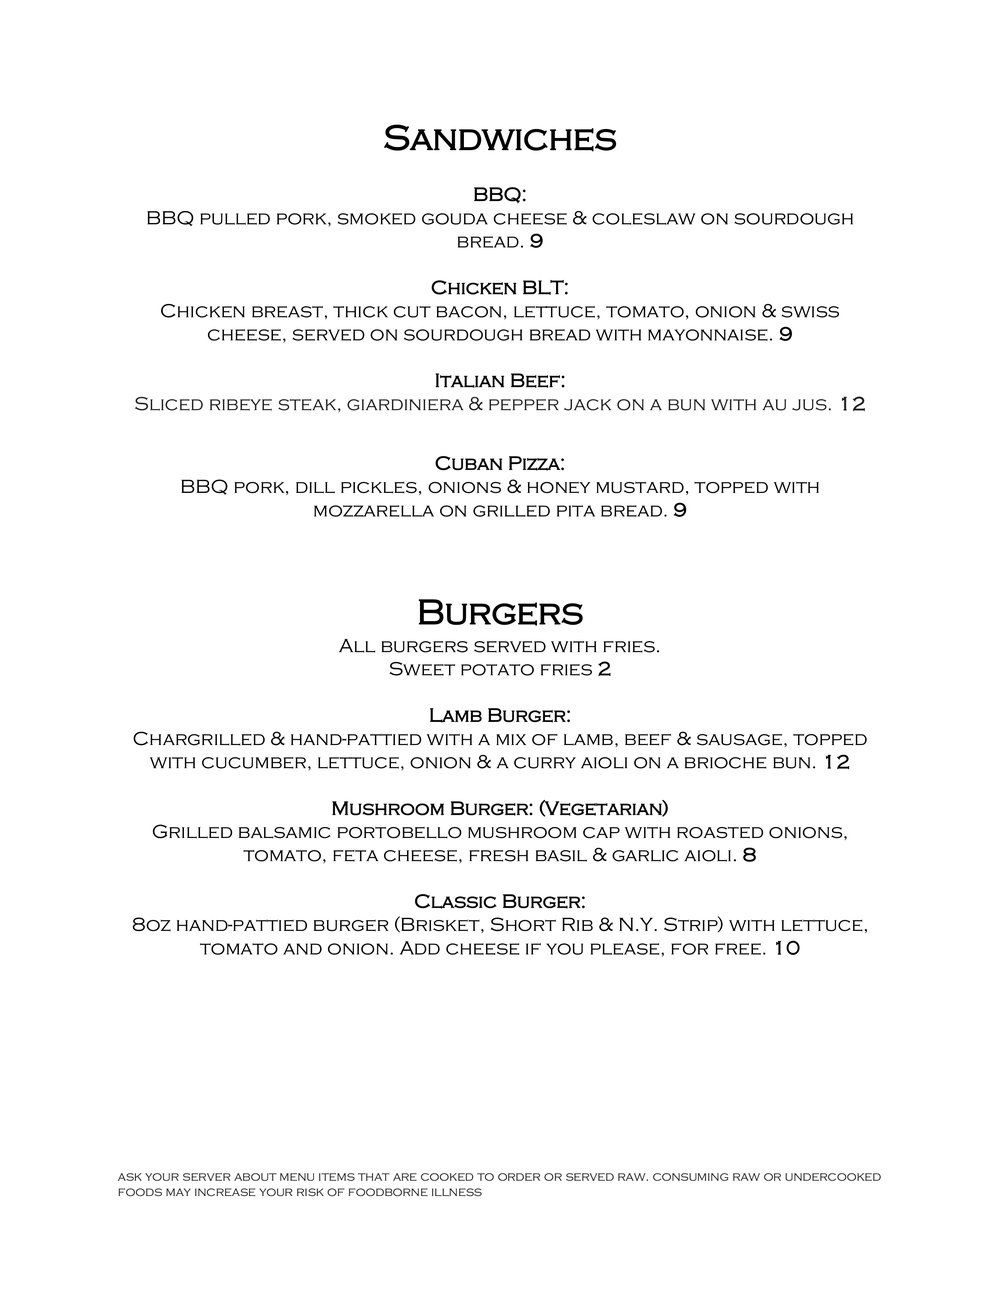 2FOG's Pub 2018 Mother's Day Brunch Menu - Page 2